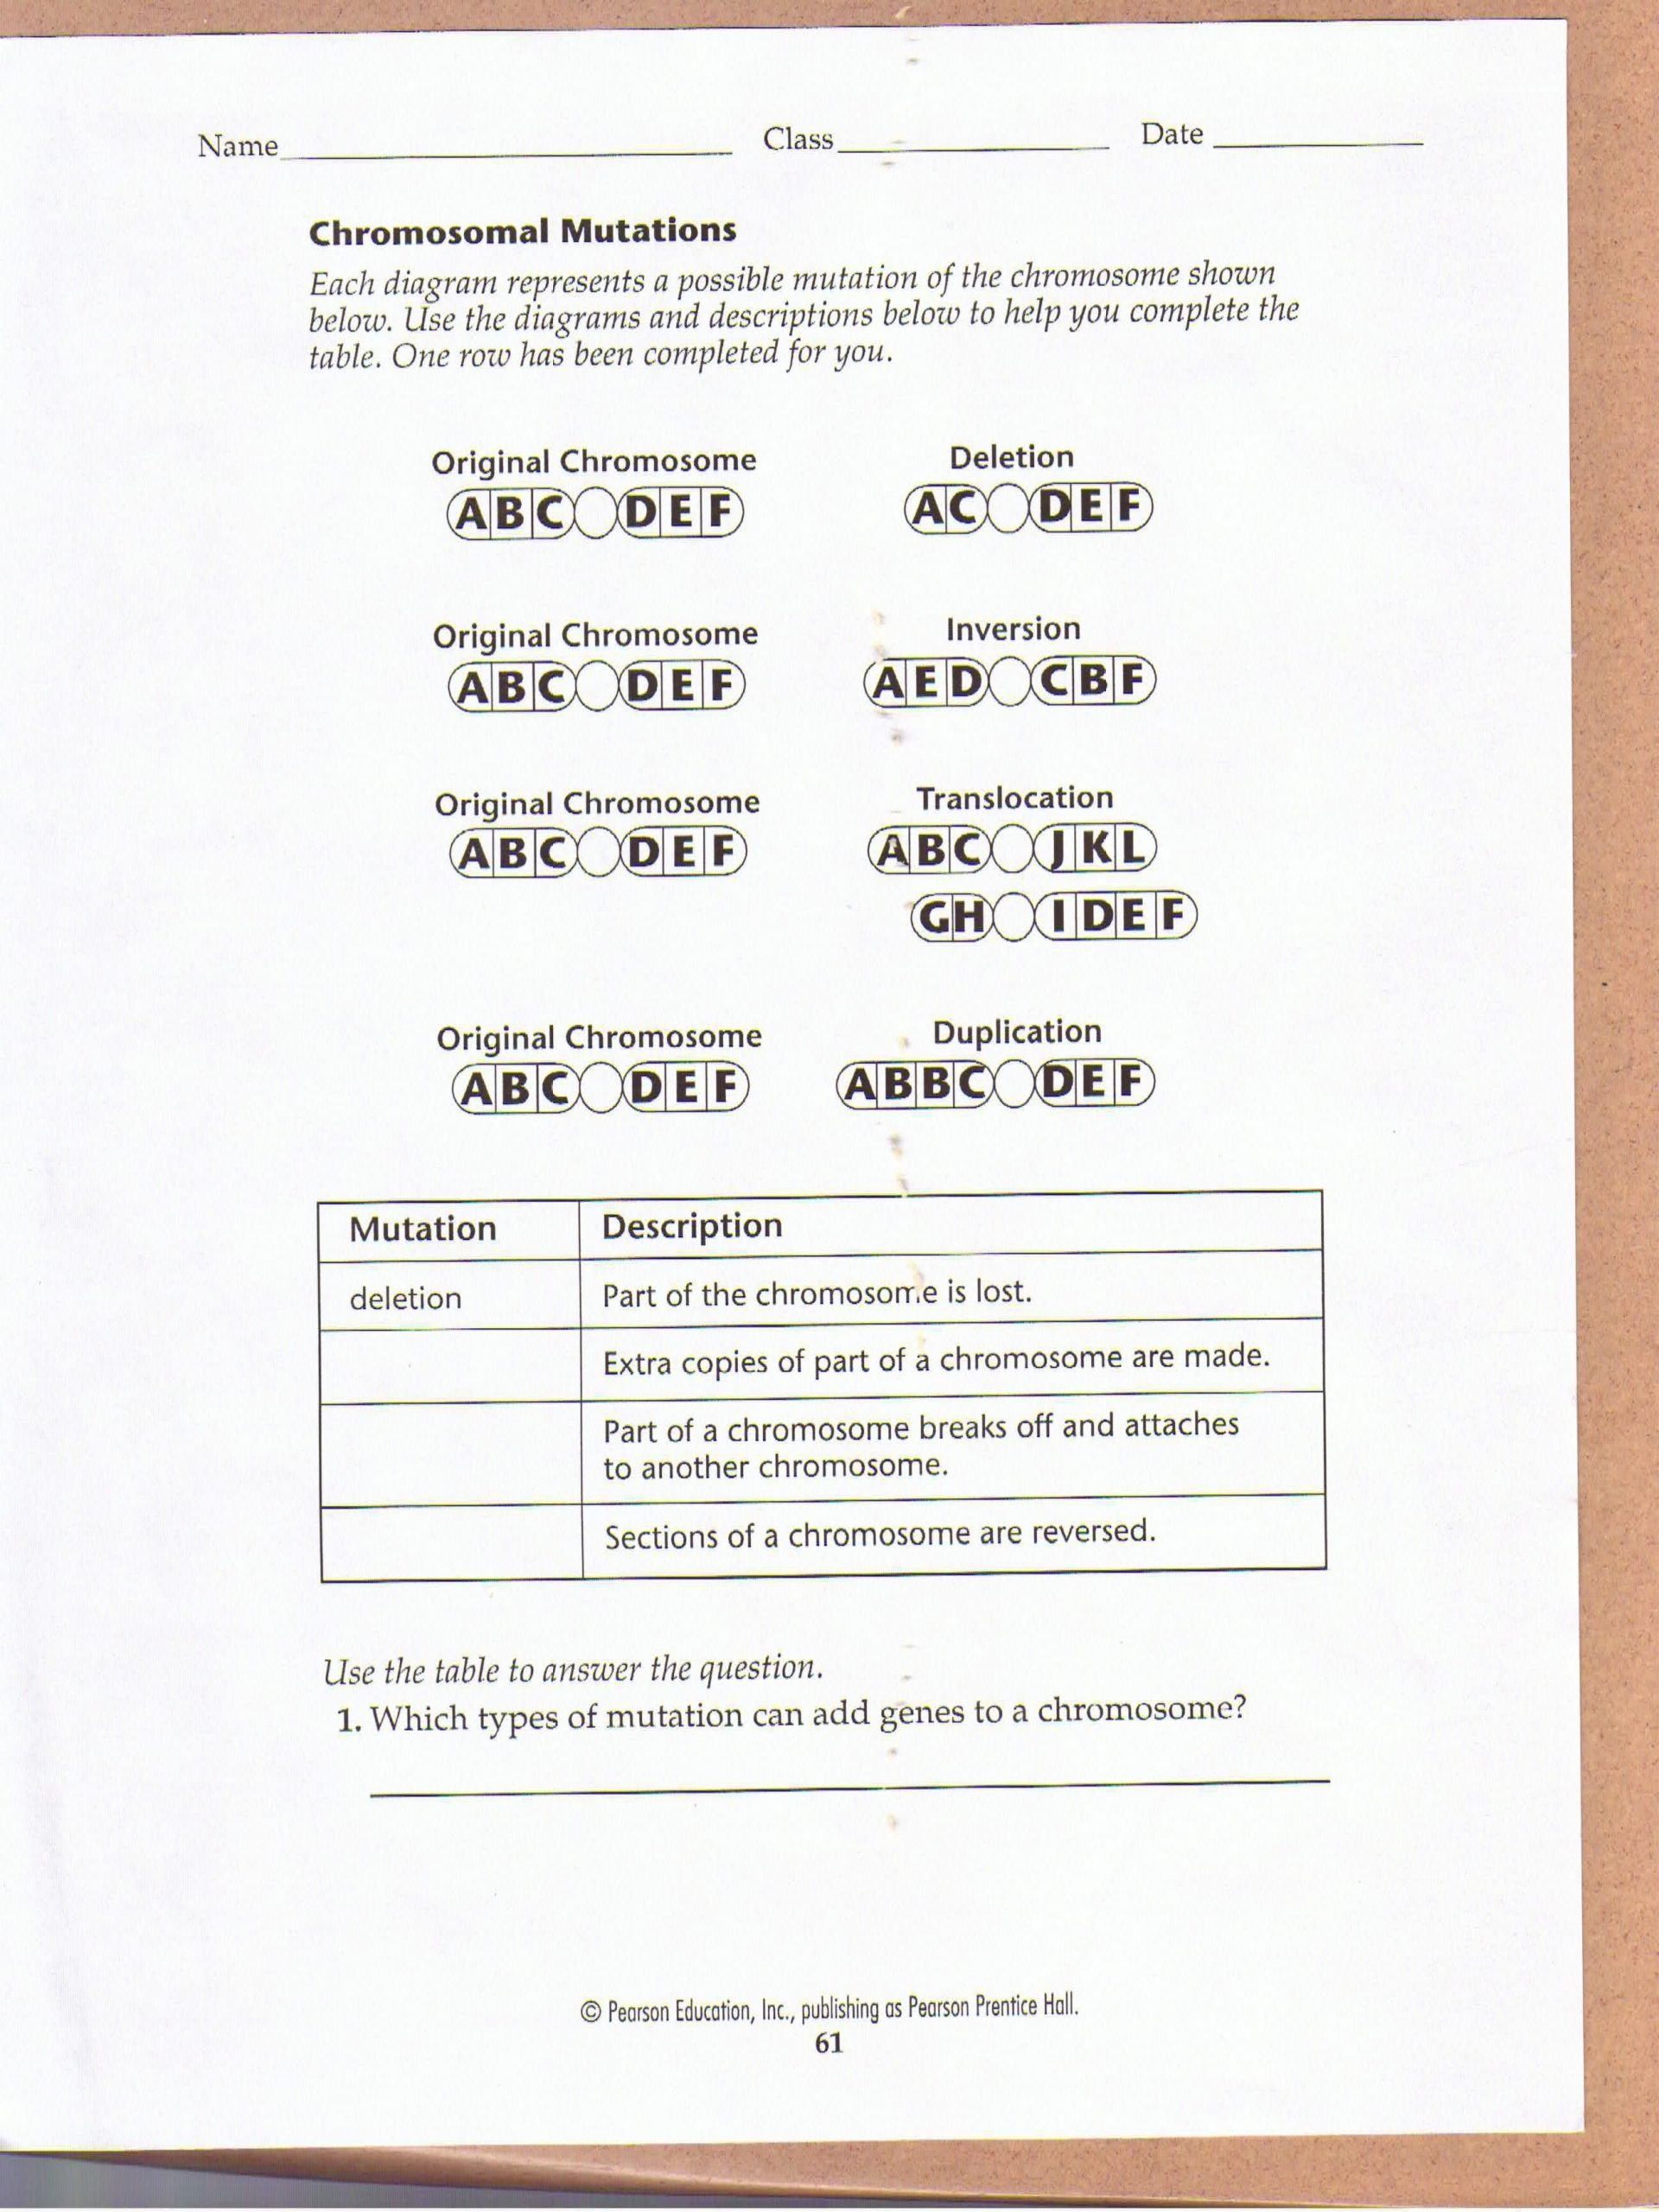 Dna Mutations Practice Worksheet Answers